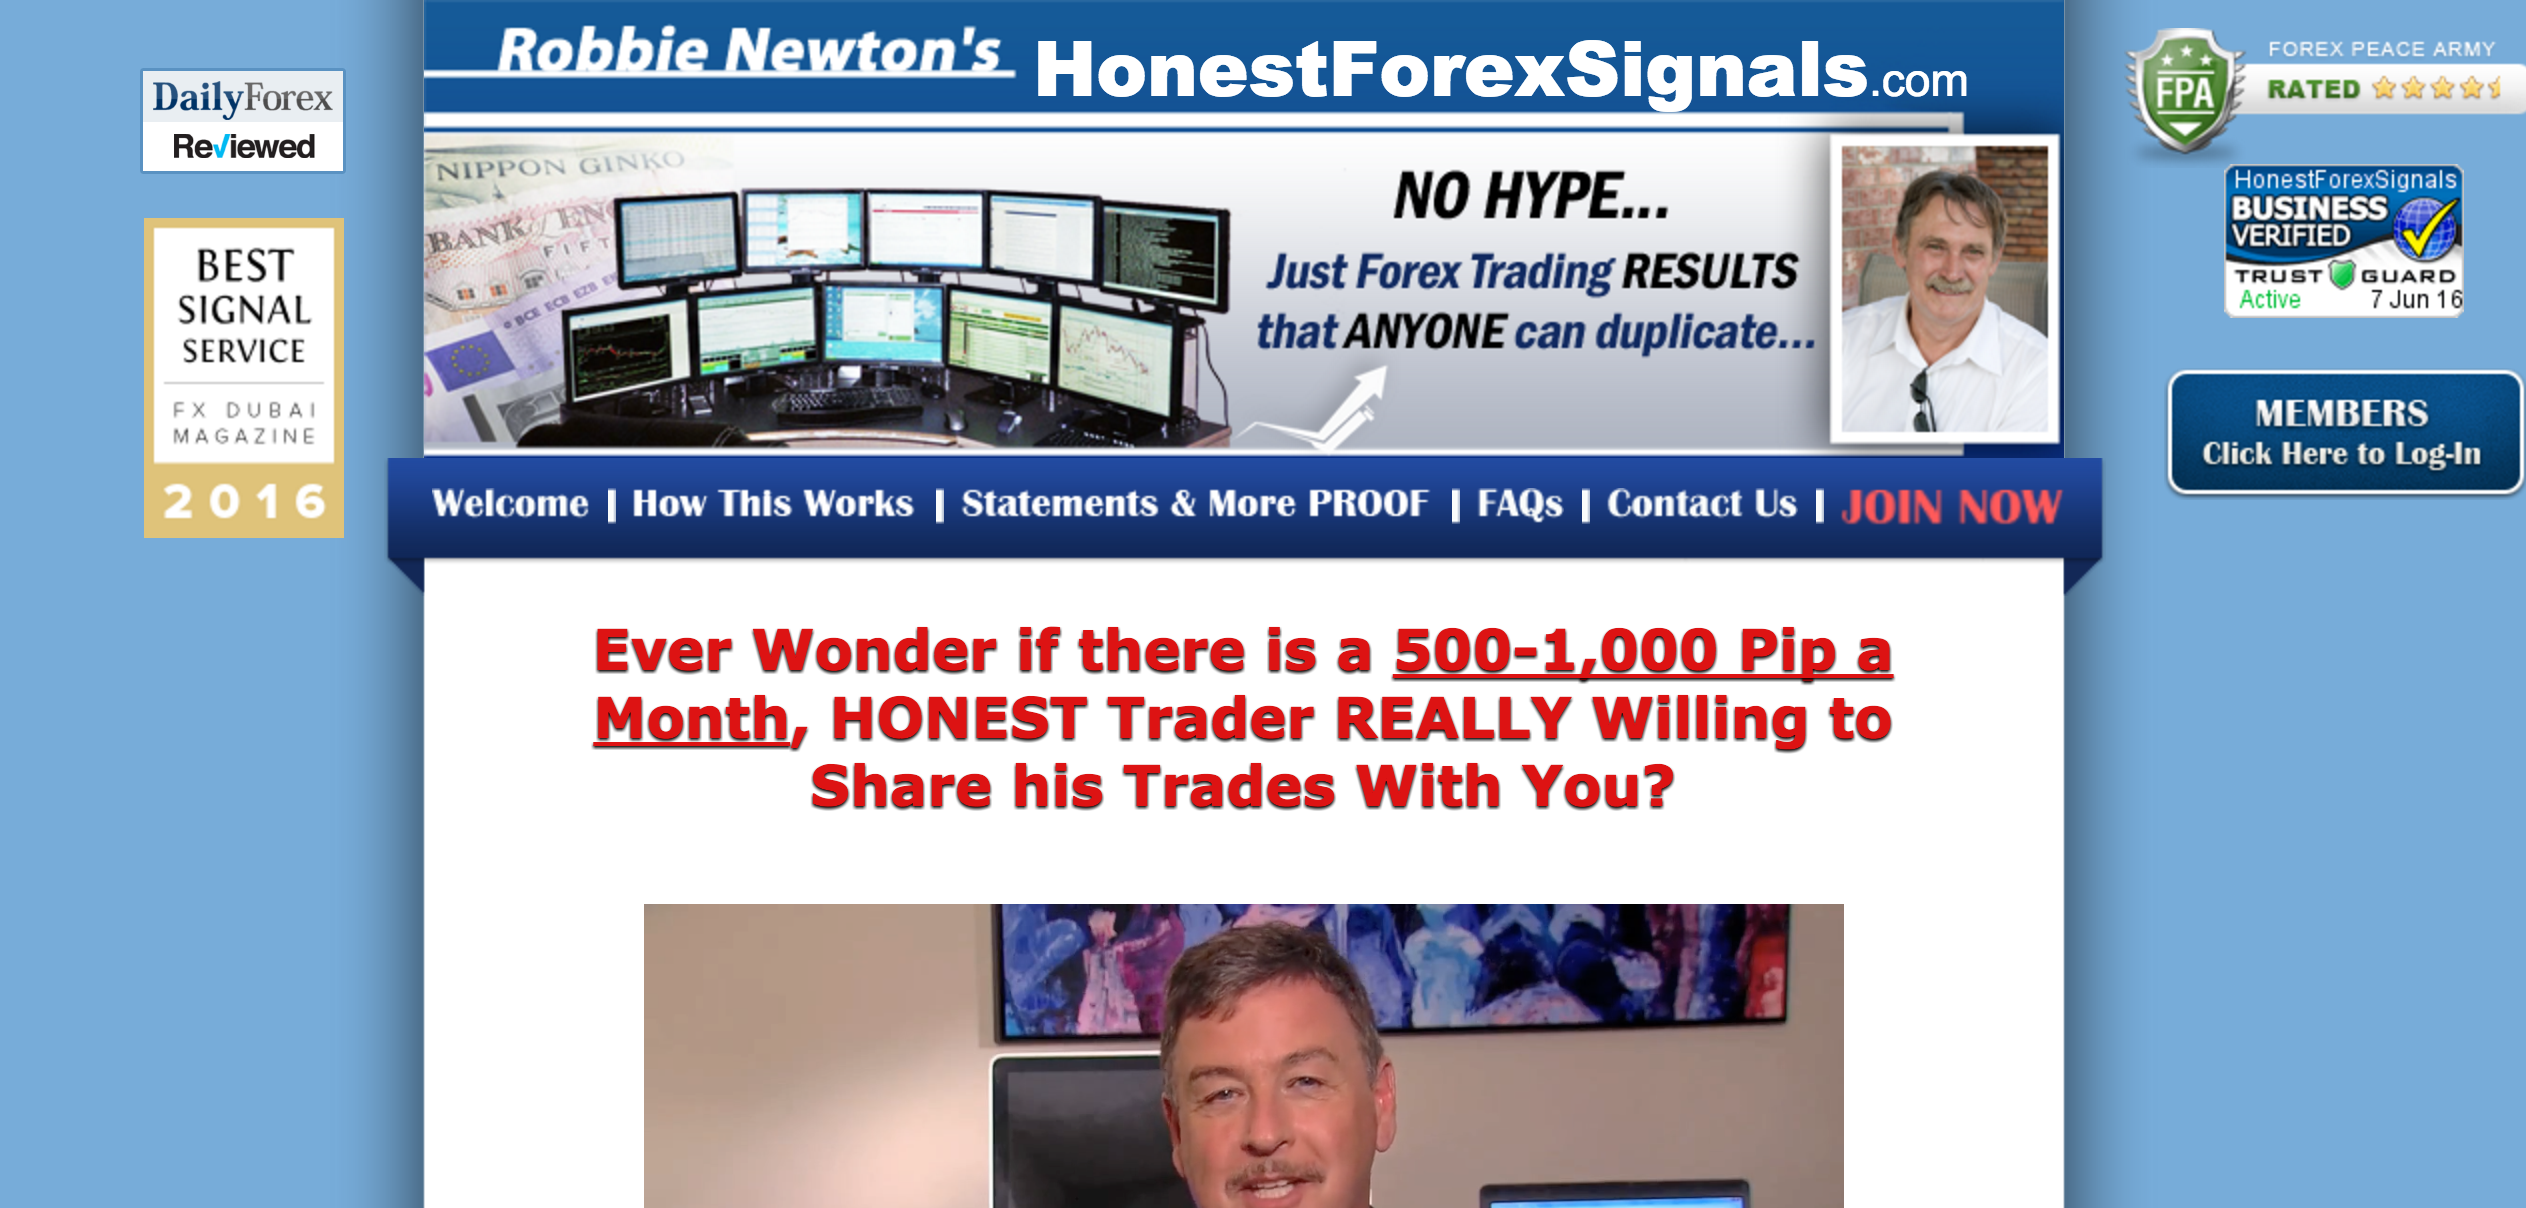 Are forex signals worth it